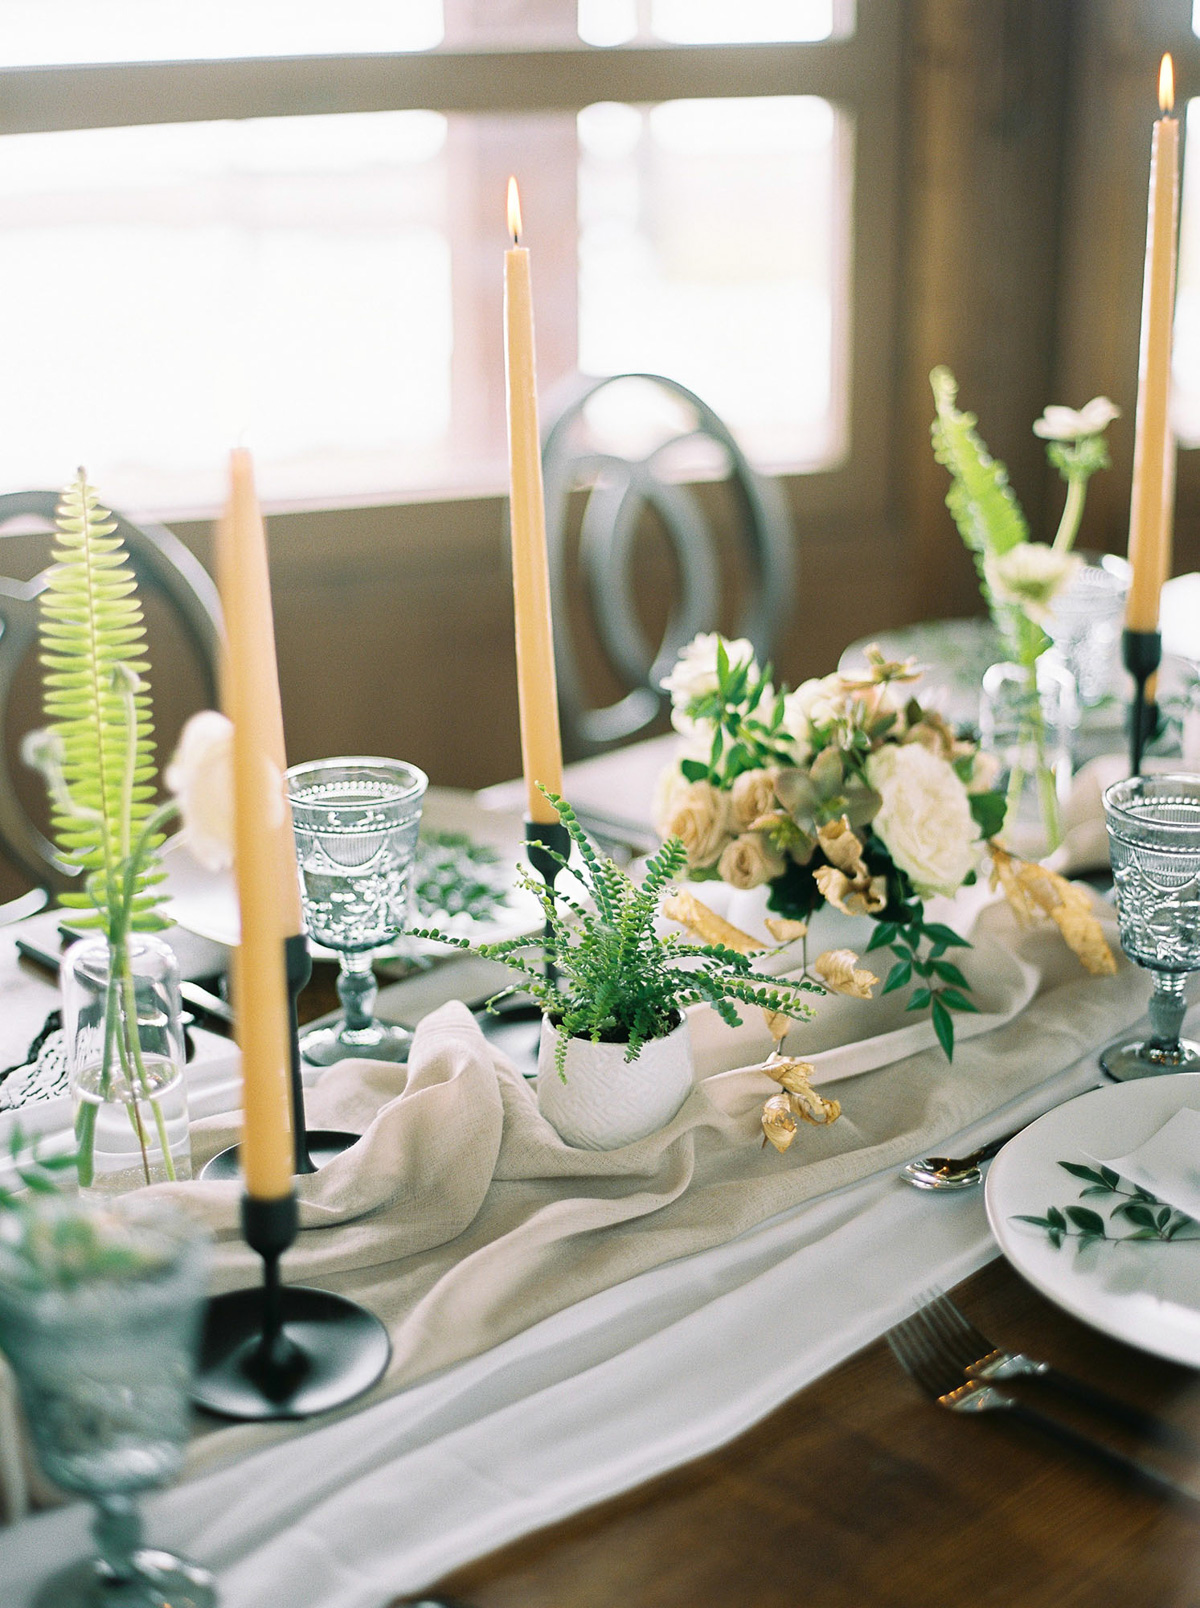 will-reid-photo-vineyard-bride-swish-list-kurtz-orchards-market-niagara-on-the-lake-wedding-editorial-6.jpg